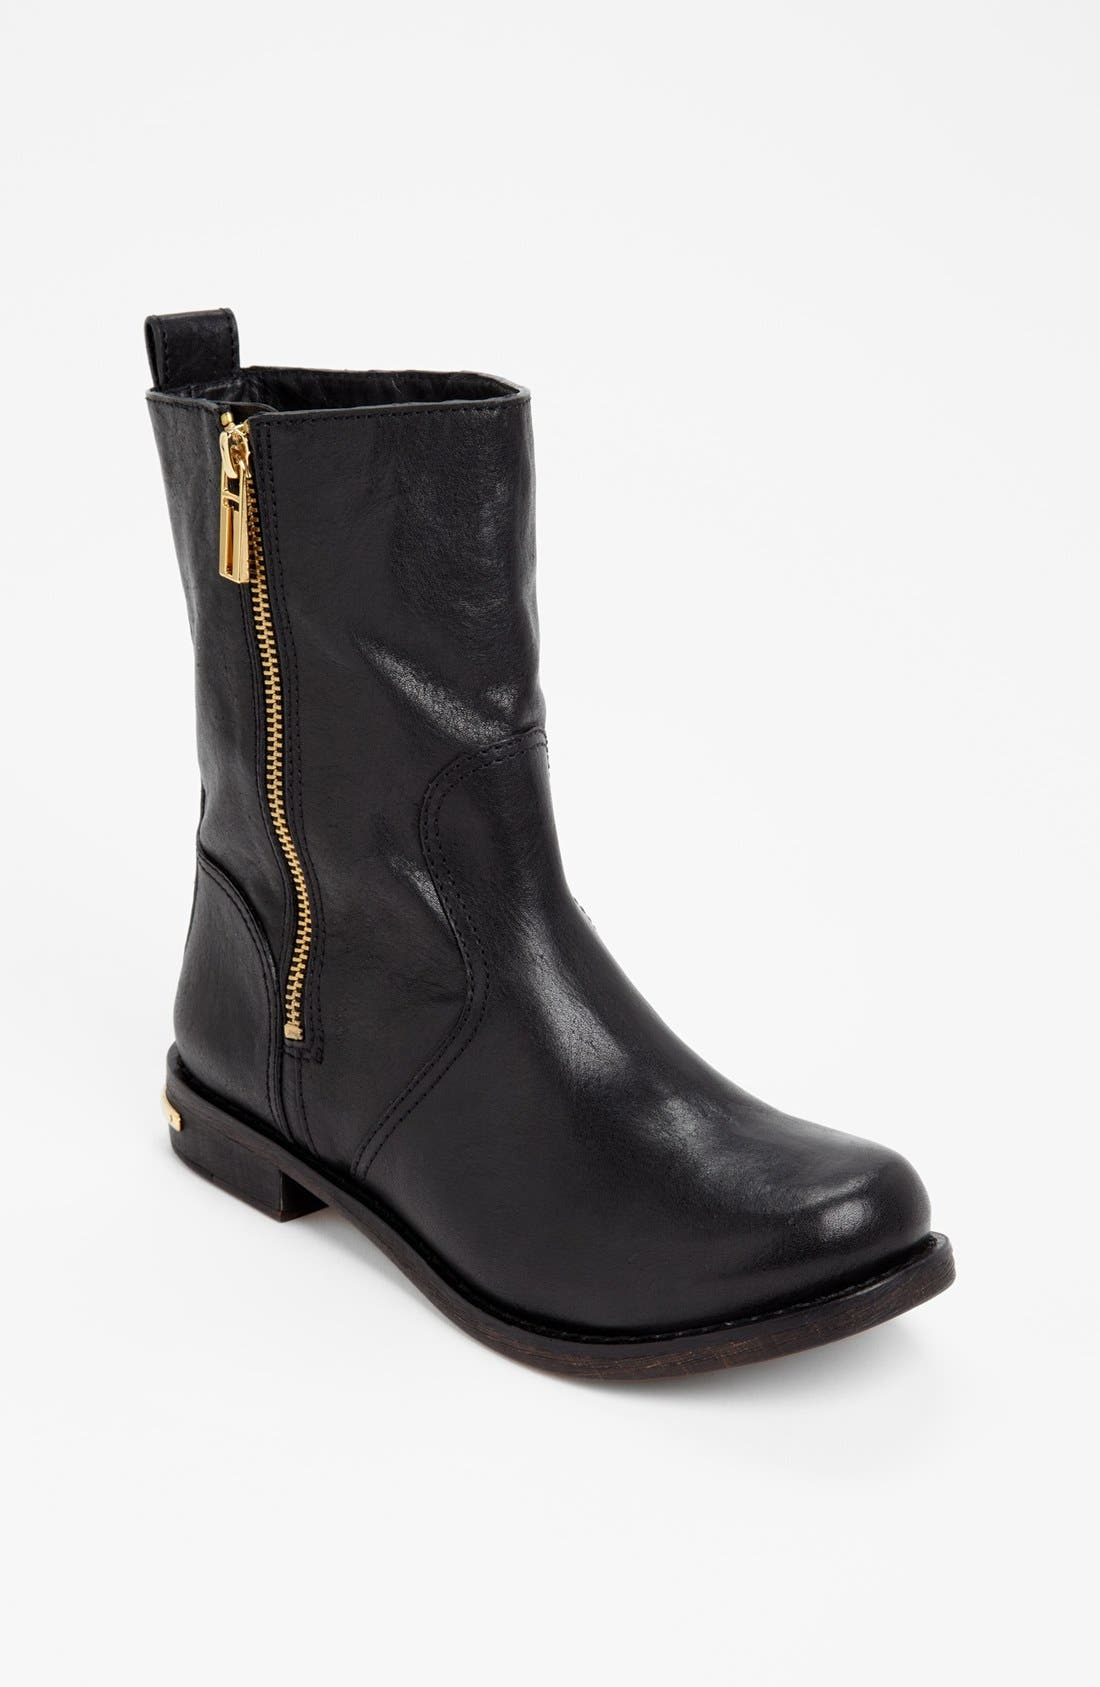 Main Image - Tory Burch 'Elyse' Bootie